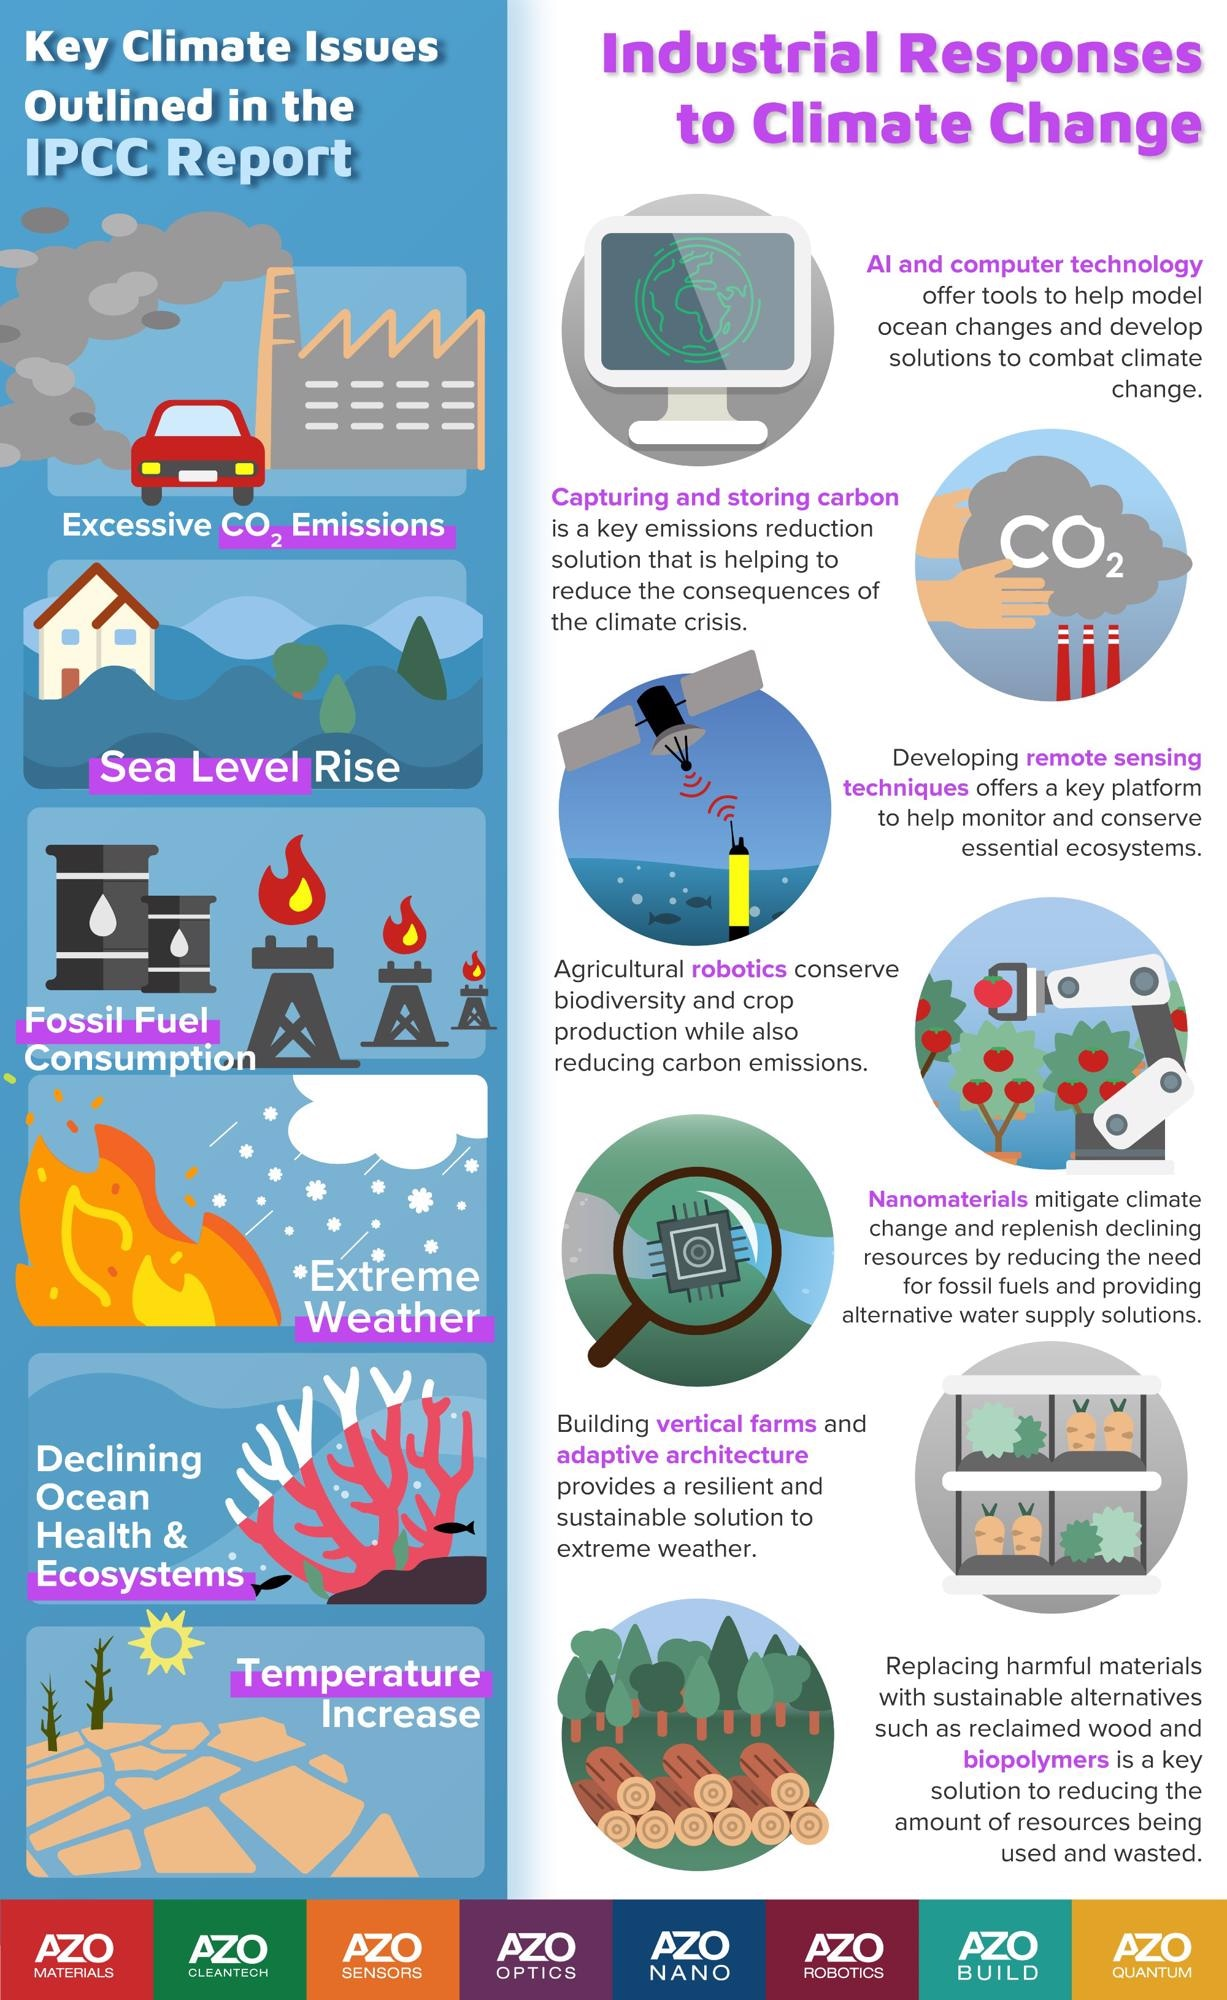 IPCC editorial series: Industrial response to climate change infographic